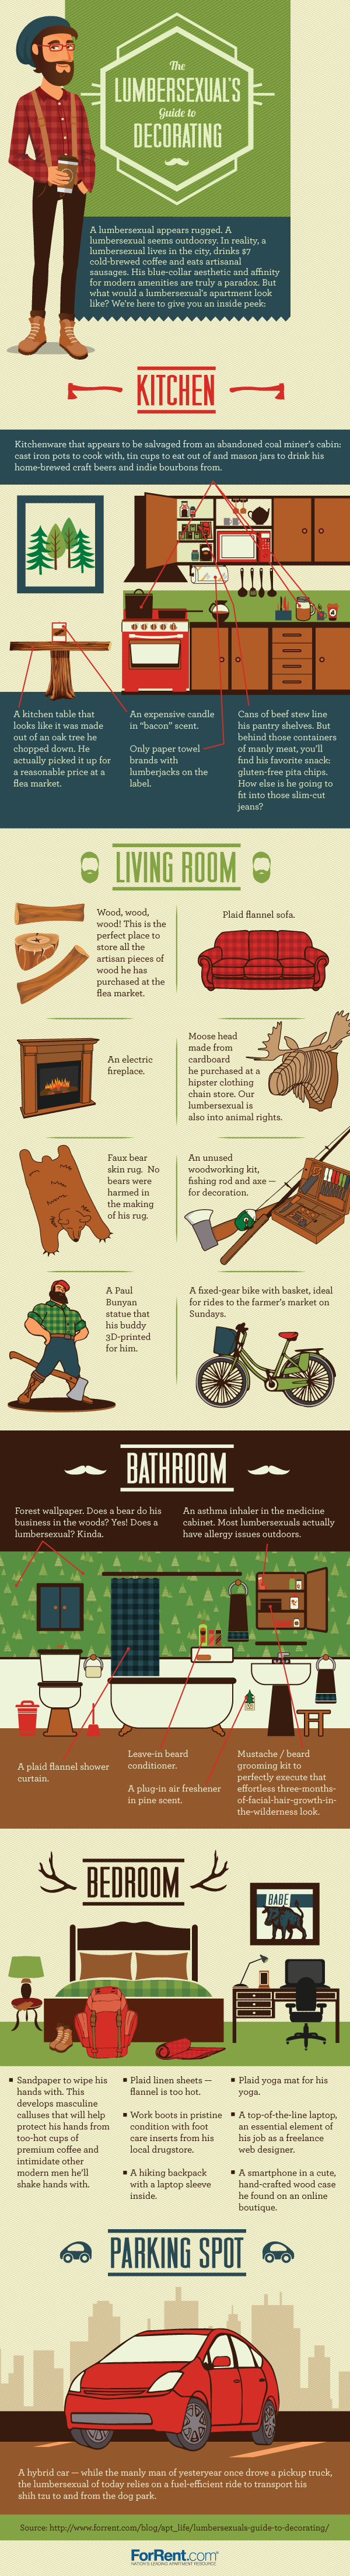 The Lumbersexual's Guide to Decorating